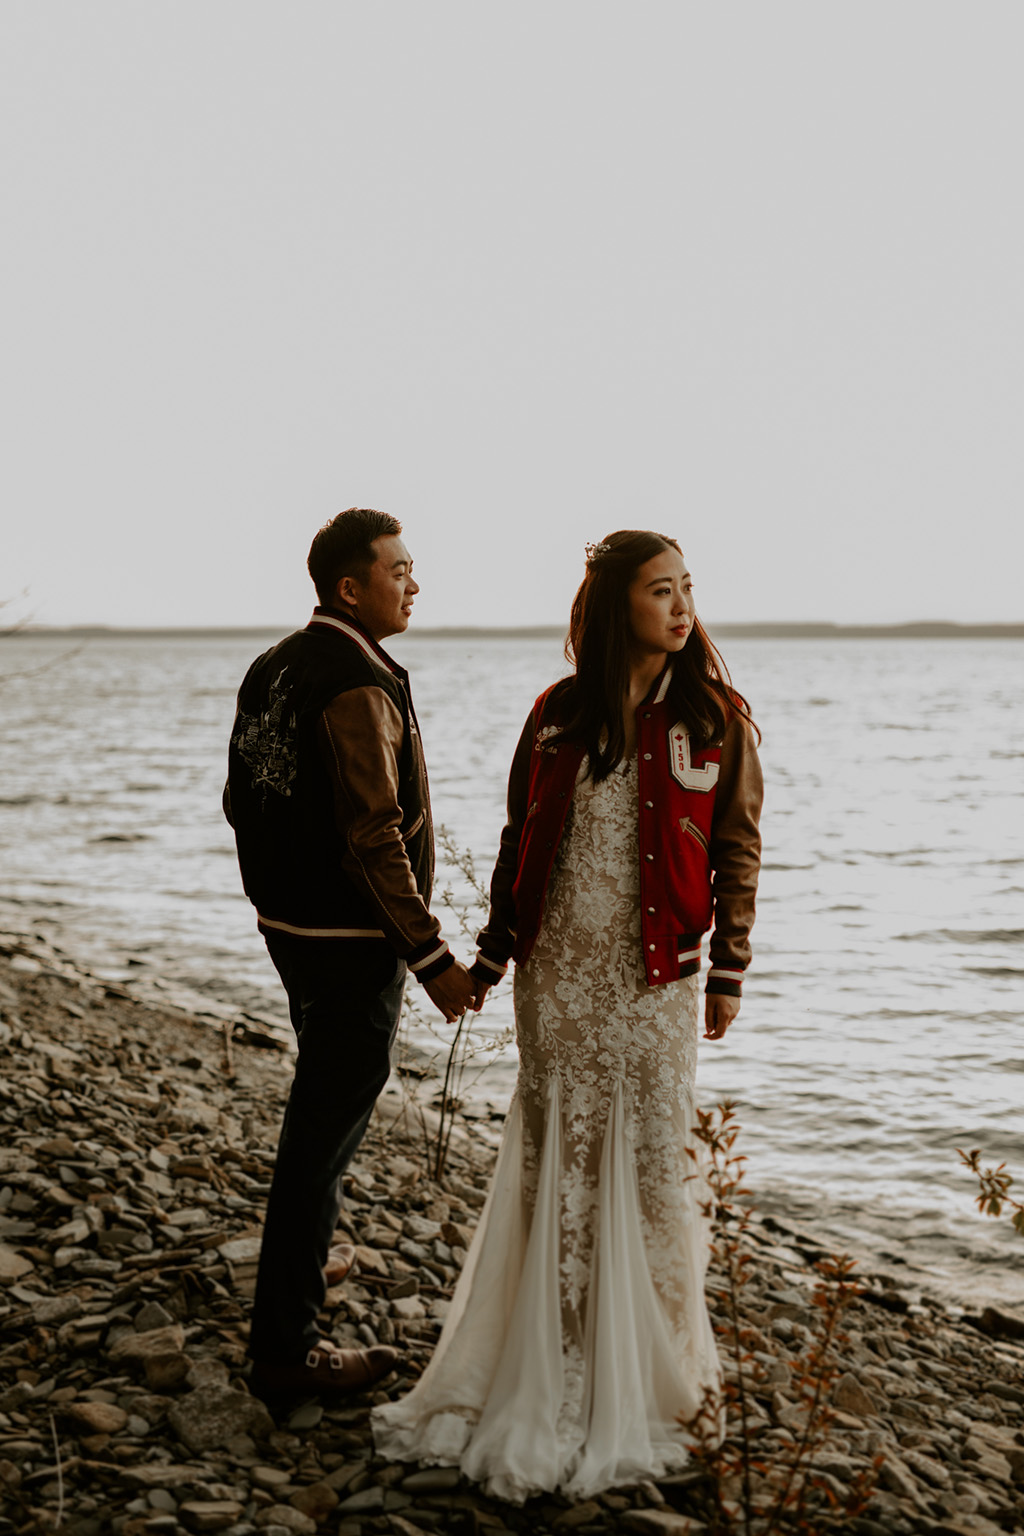 Serenity Cottage Wedding - bride and groom in Letterman Jackets on the beach